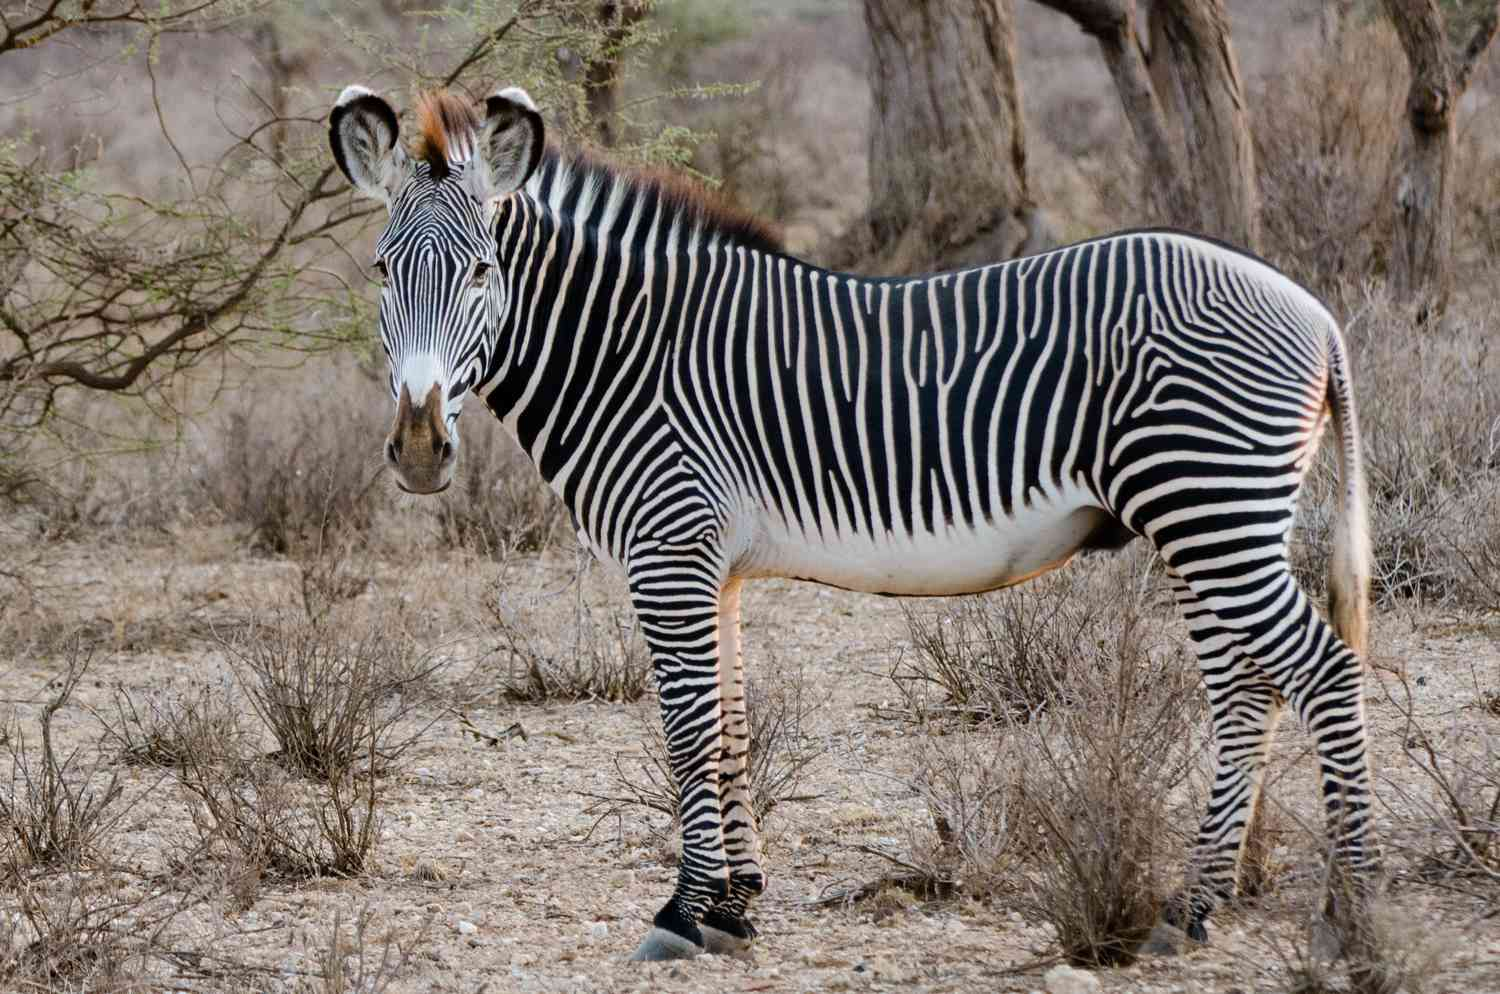 A zebra standing in an open pasture.